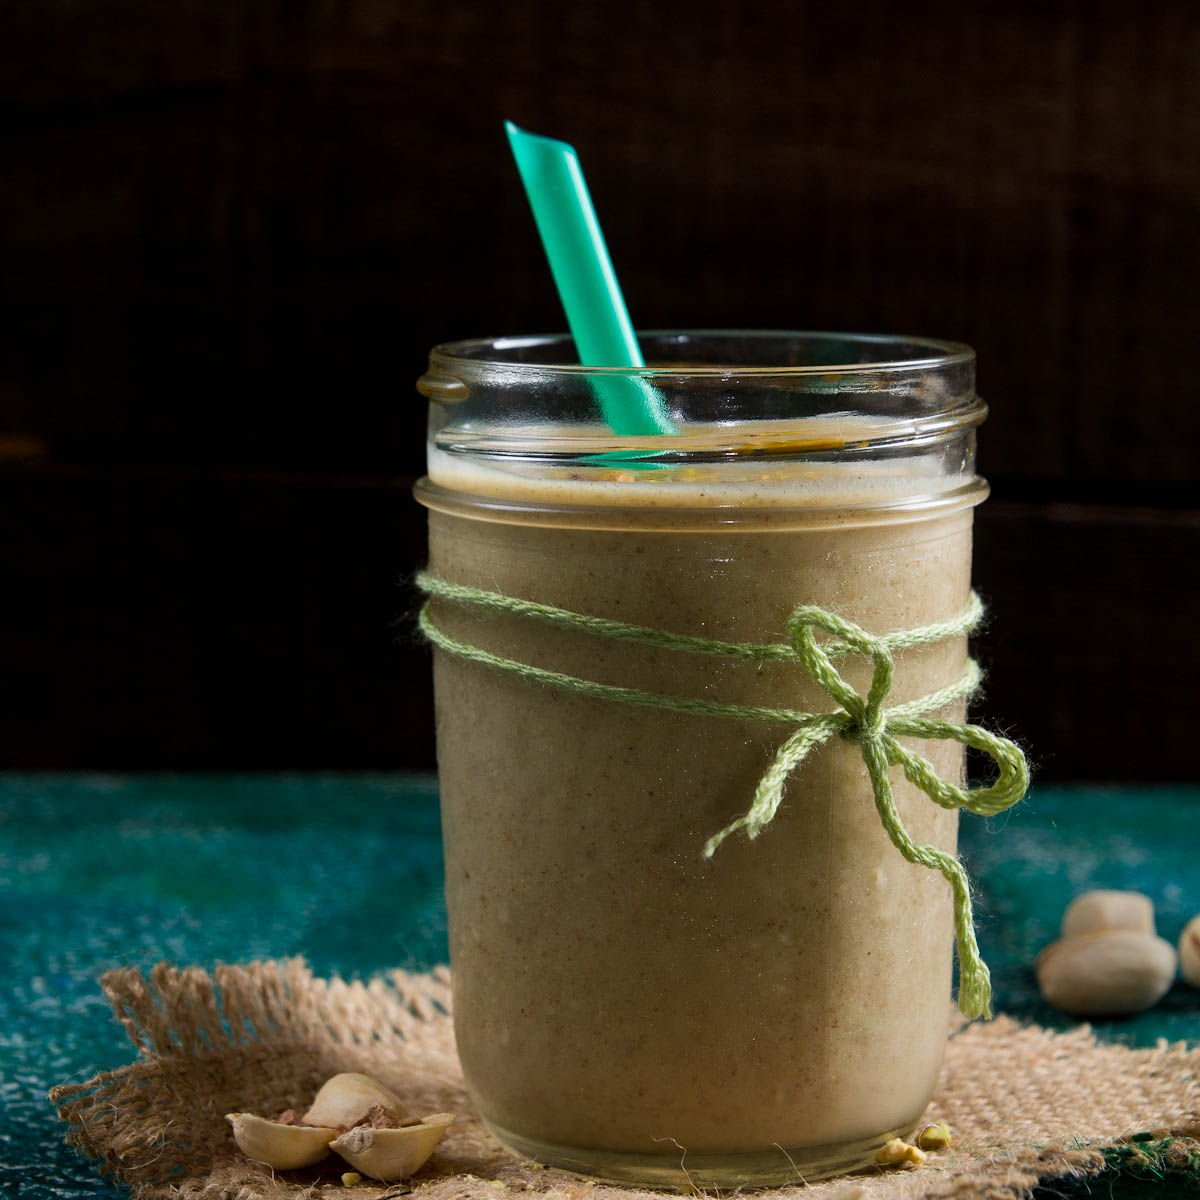 Pistachio date milk smoothie recipe by Indiaphile.info